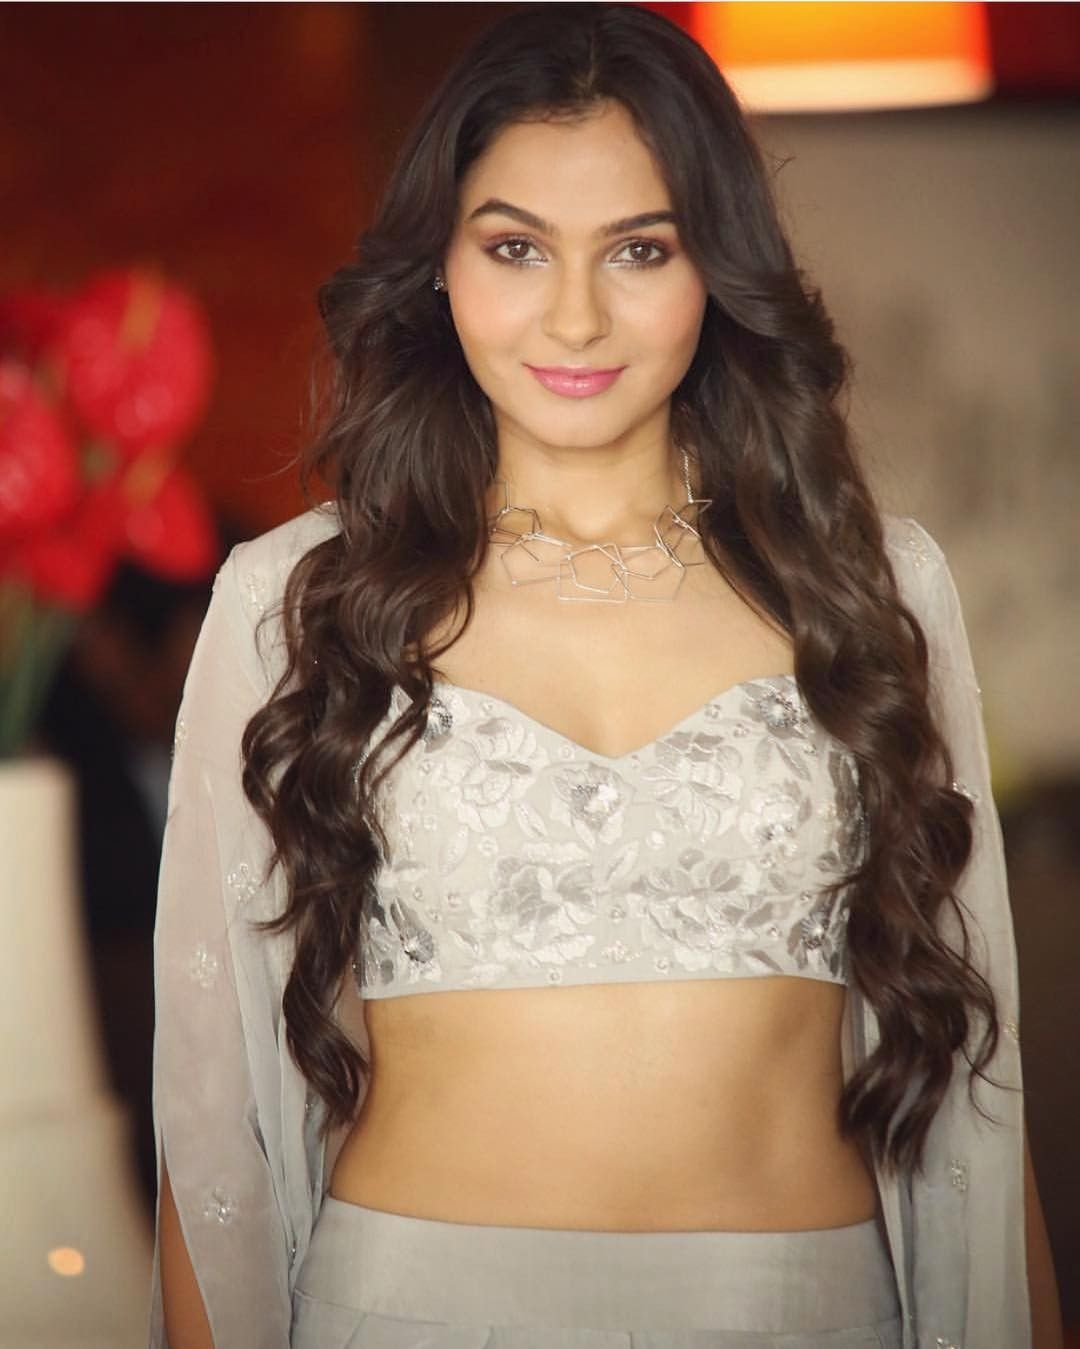 Andrea Sexy Picture andrea jeremiah hot look #andreajeremiah   indian actress